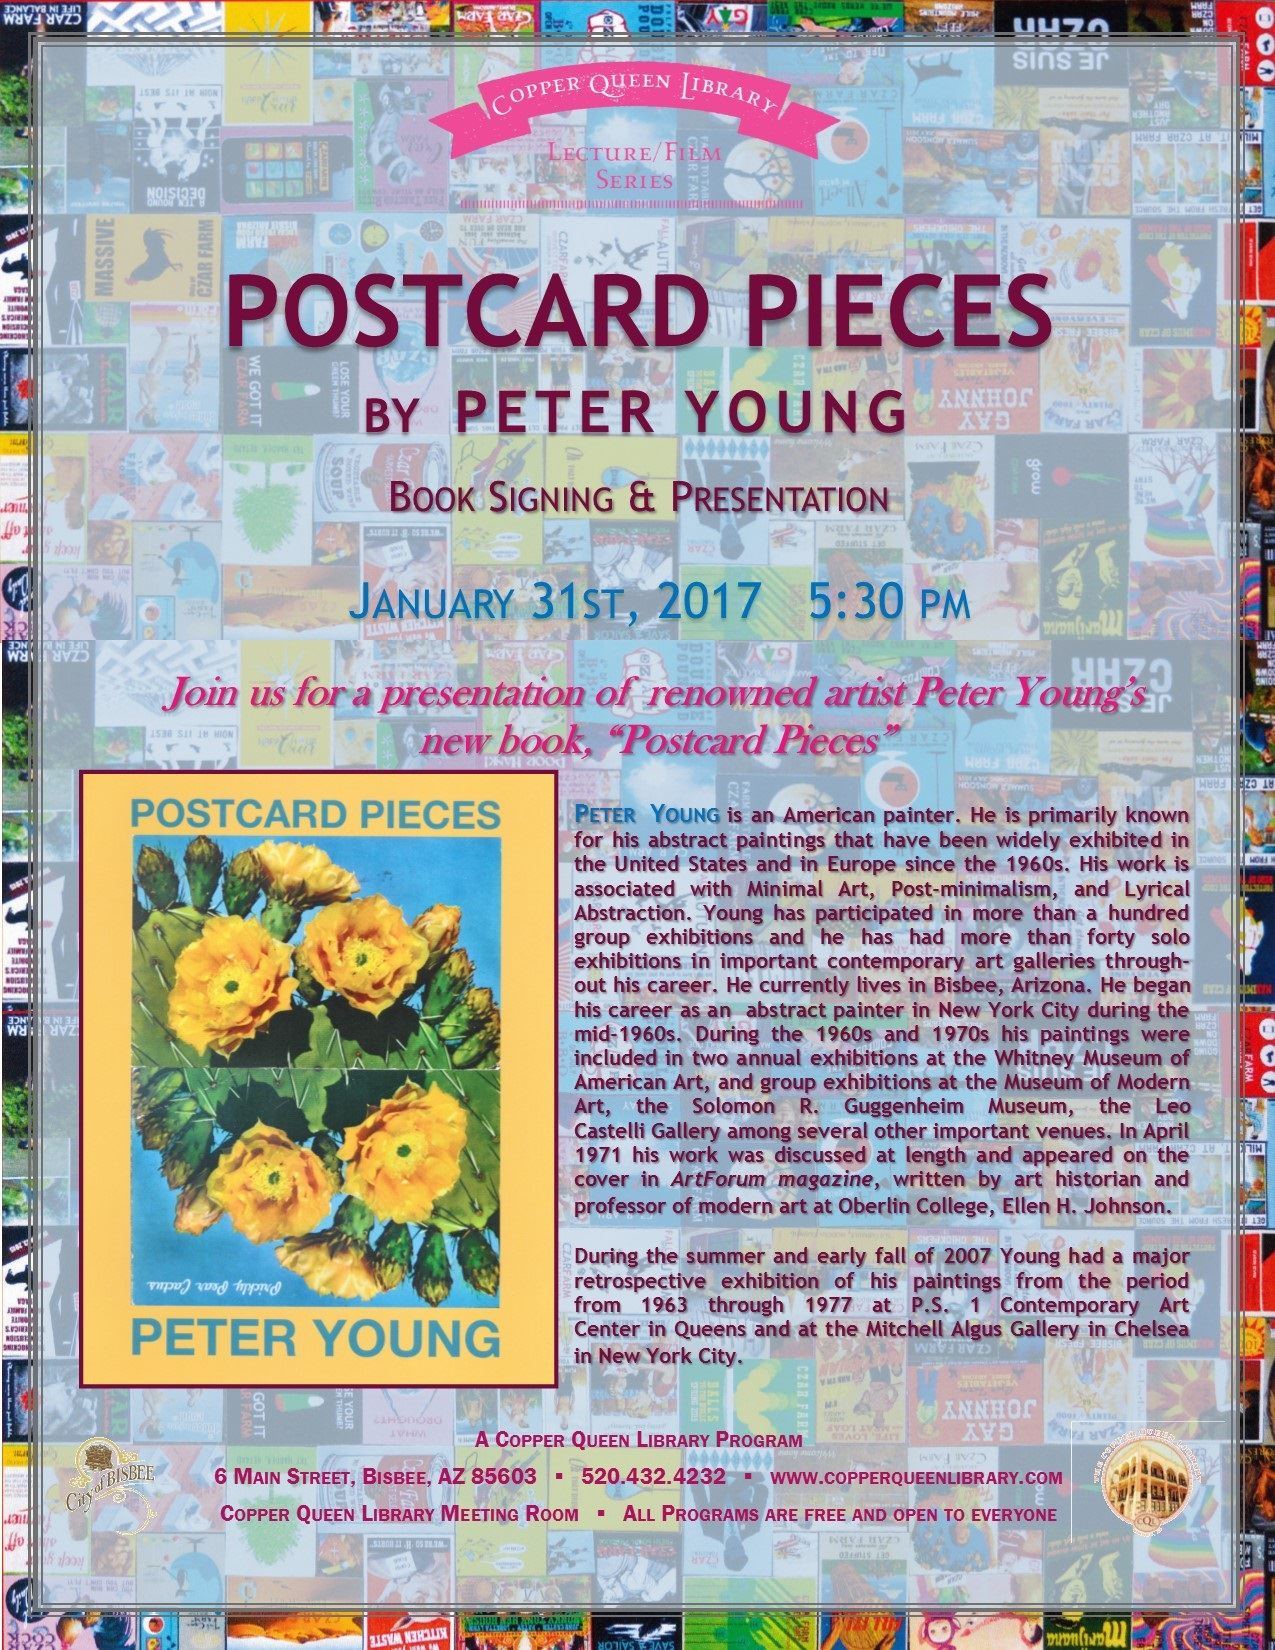 POSTCARD PIECES PETER YOUNG 1.31.17 POSTER 8.5x11